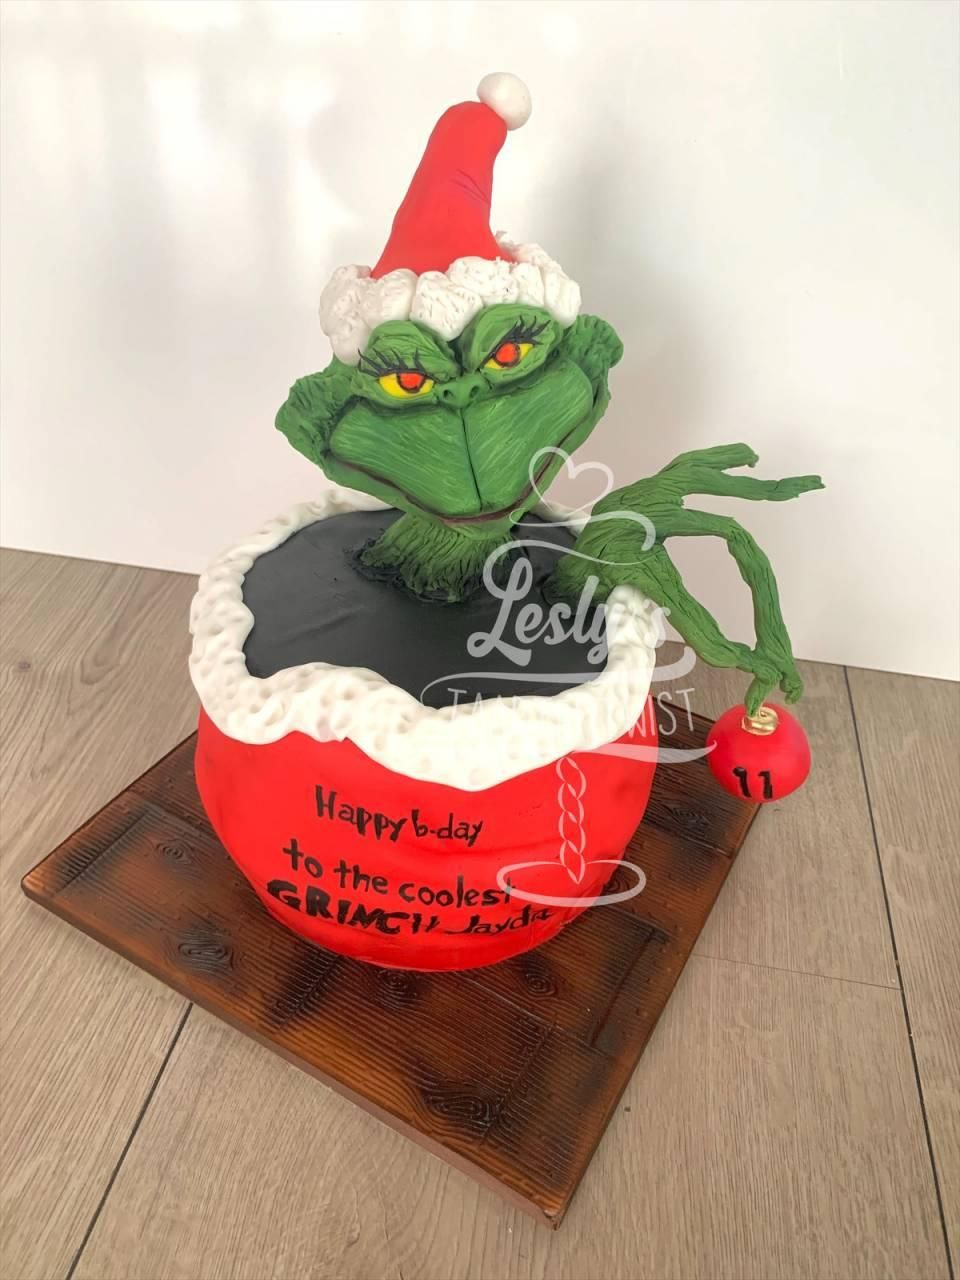 the-grinch-who-stole-christmas-cake